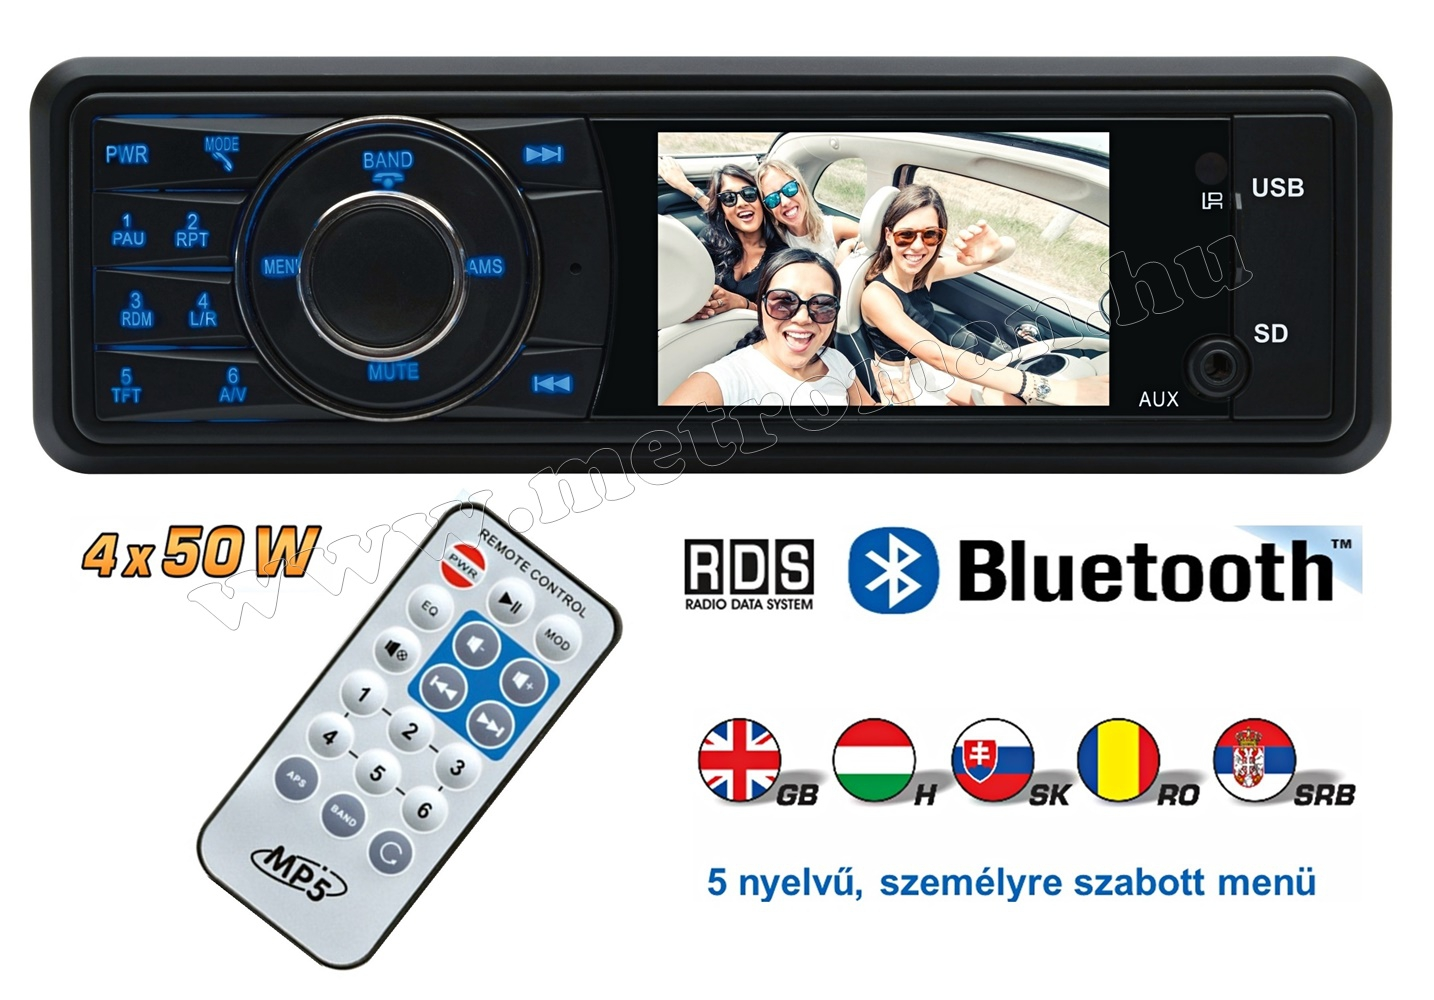 USB/SD MP3 MP4 MP5 Bluetooth Multimédiás autórádió LCD monitorral VB X100 BT